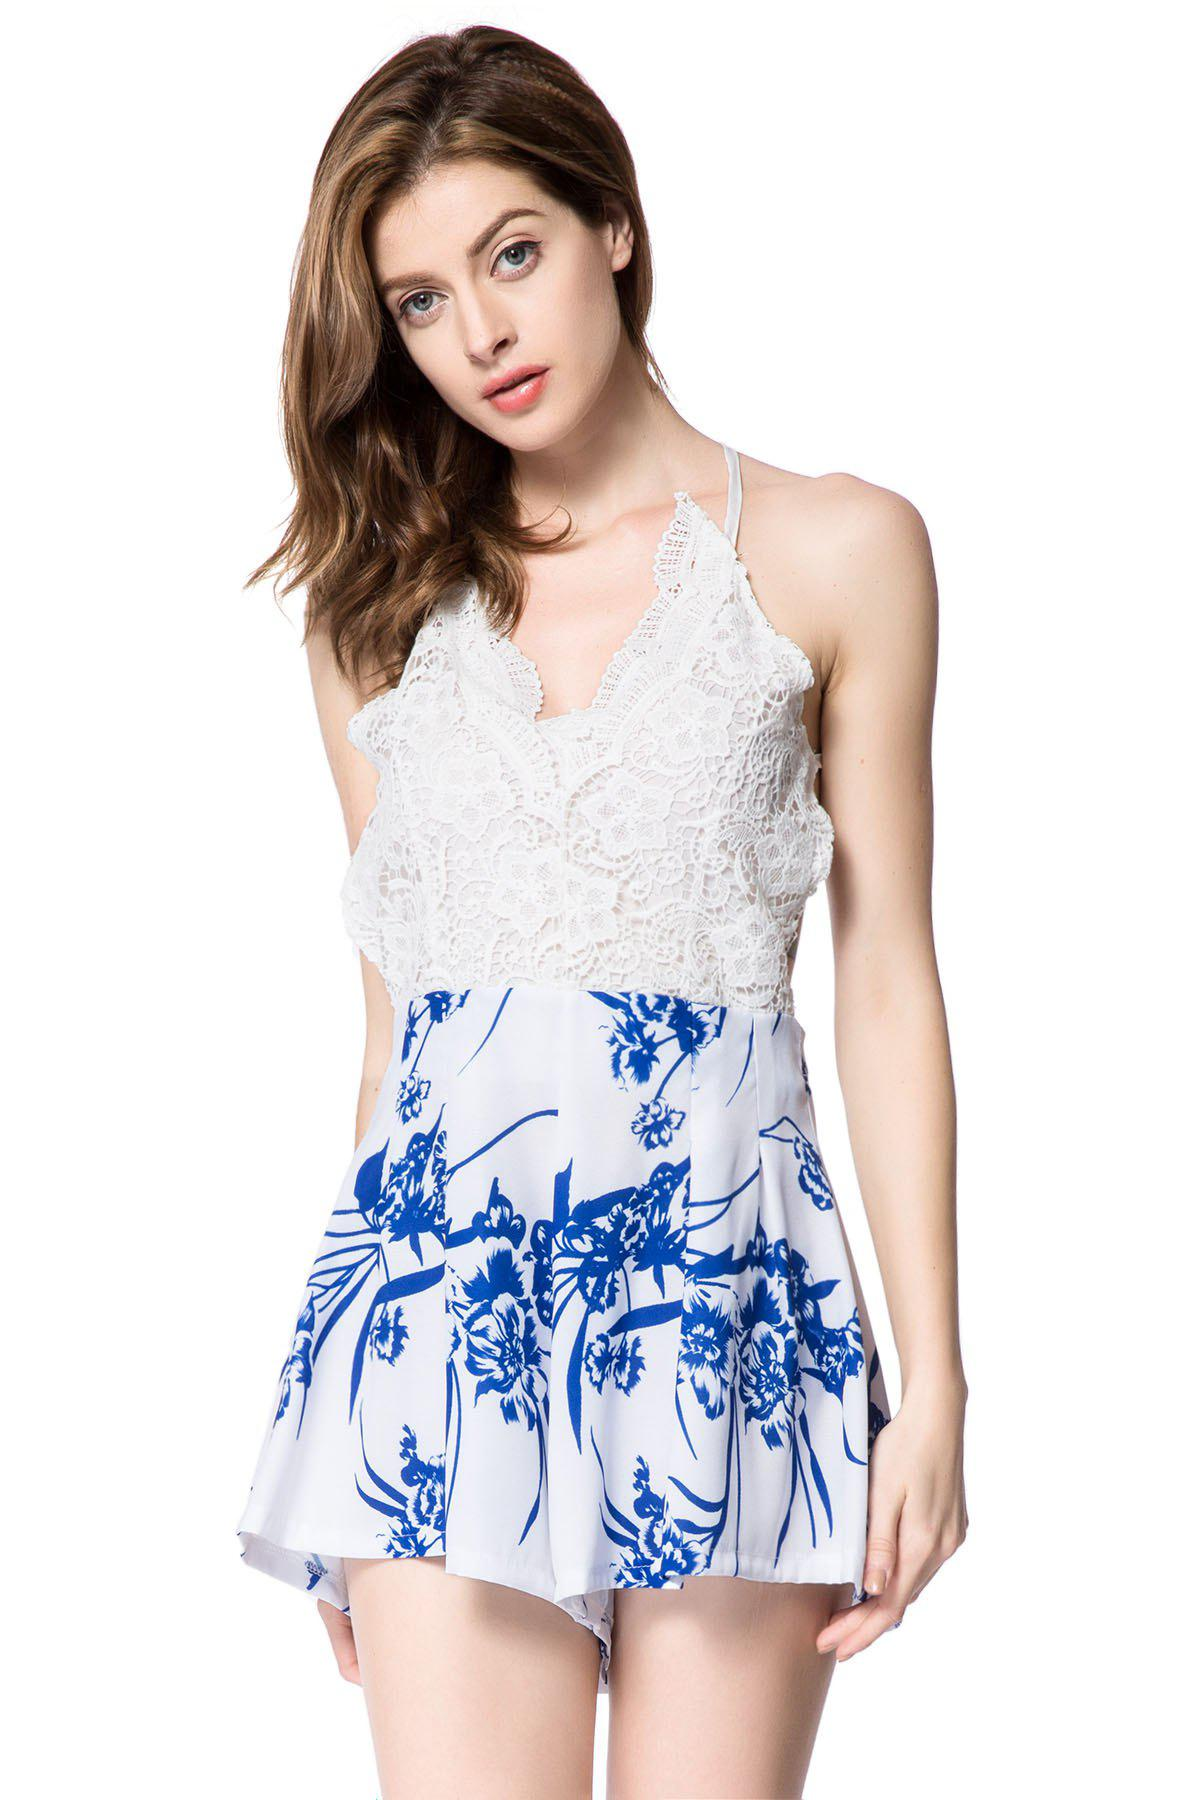 What are Halter V Neck Bowknot Lace Up Plain Long Sleeve Party Dresses ebay stores